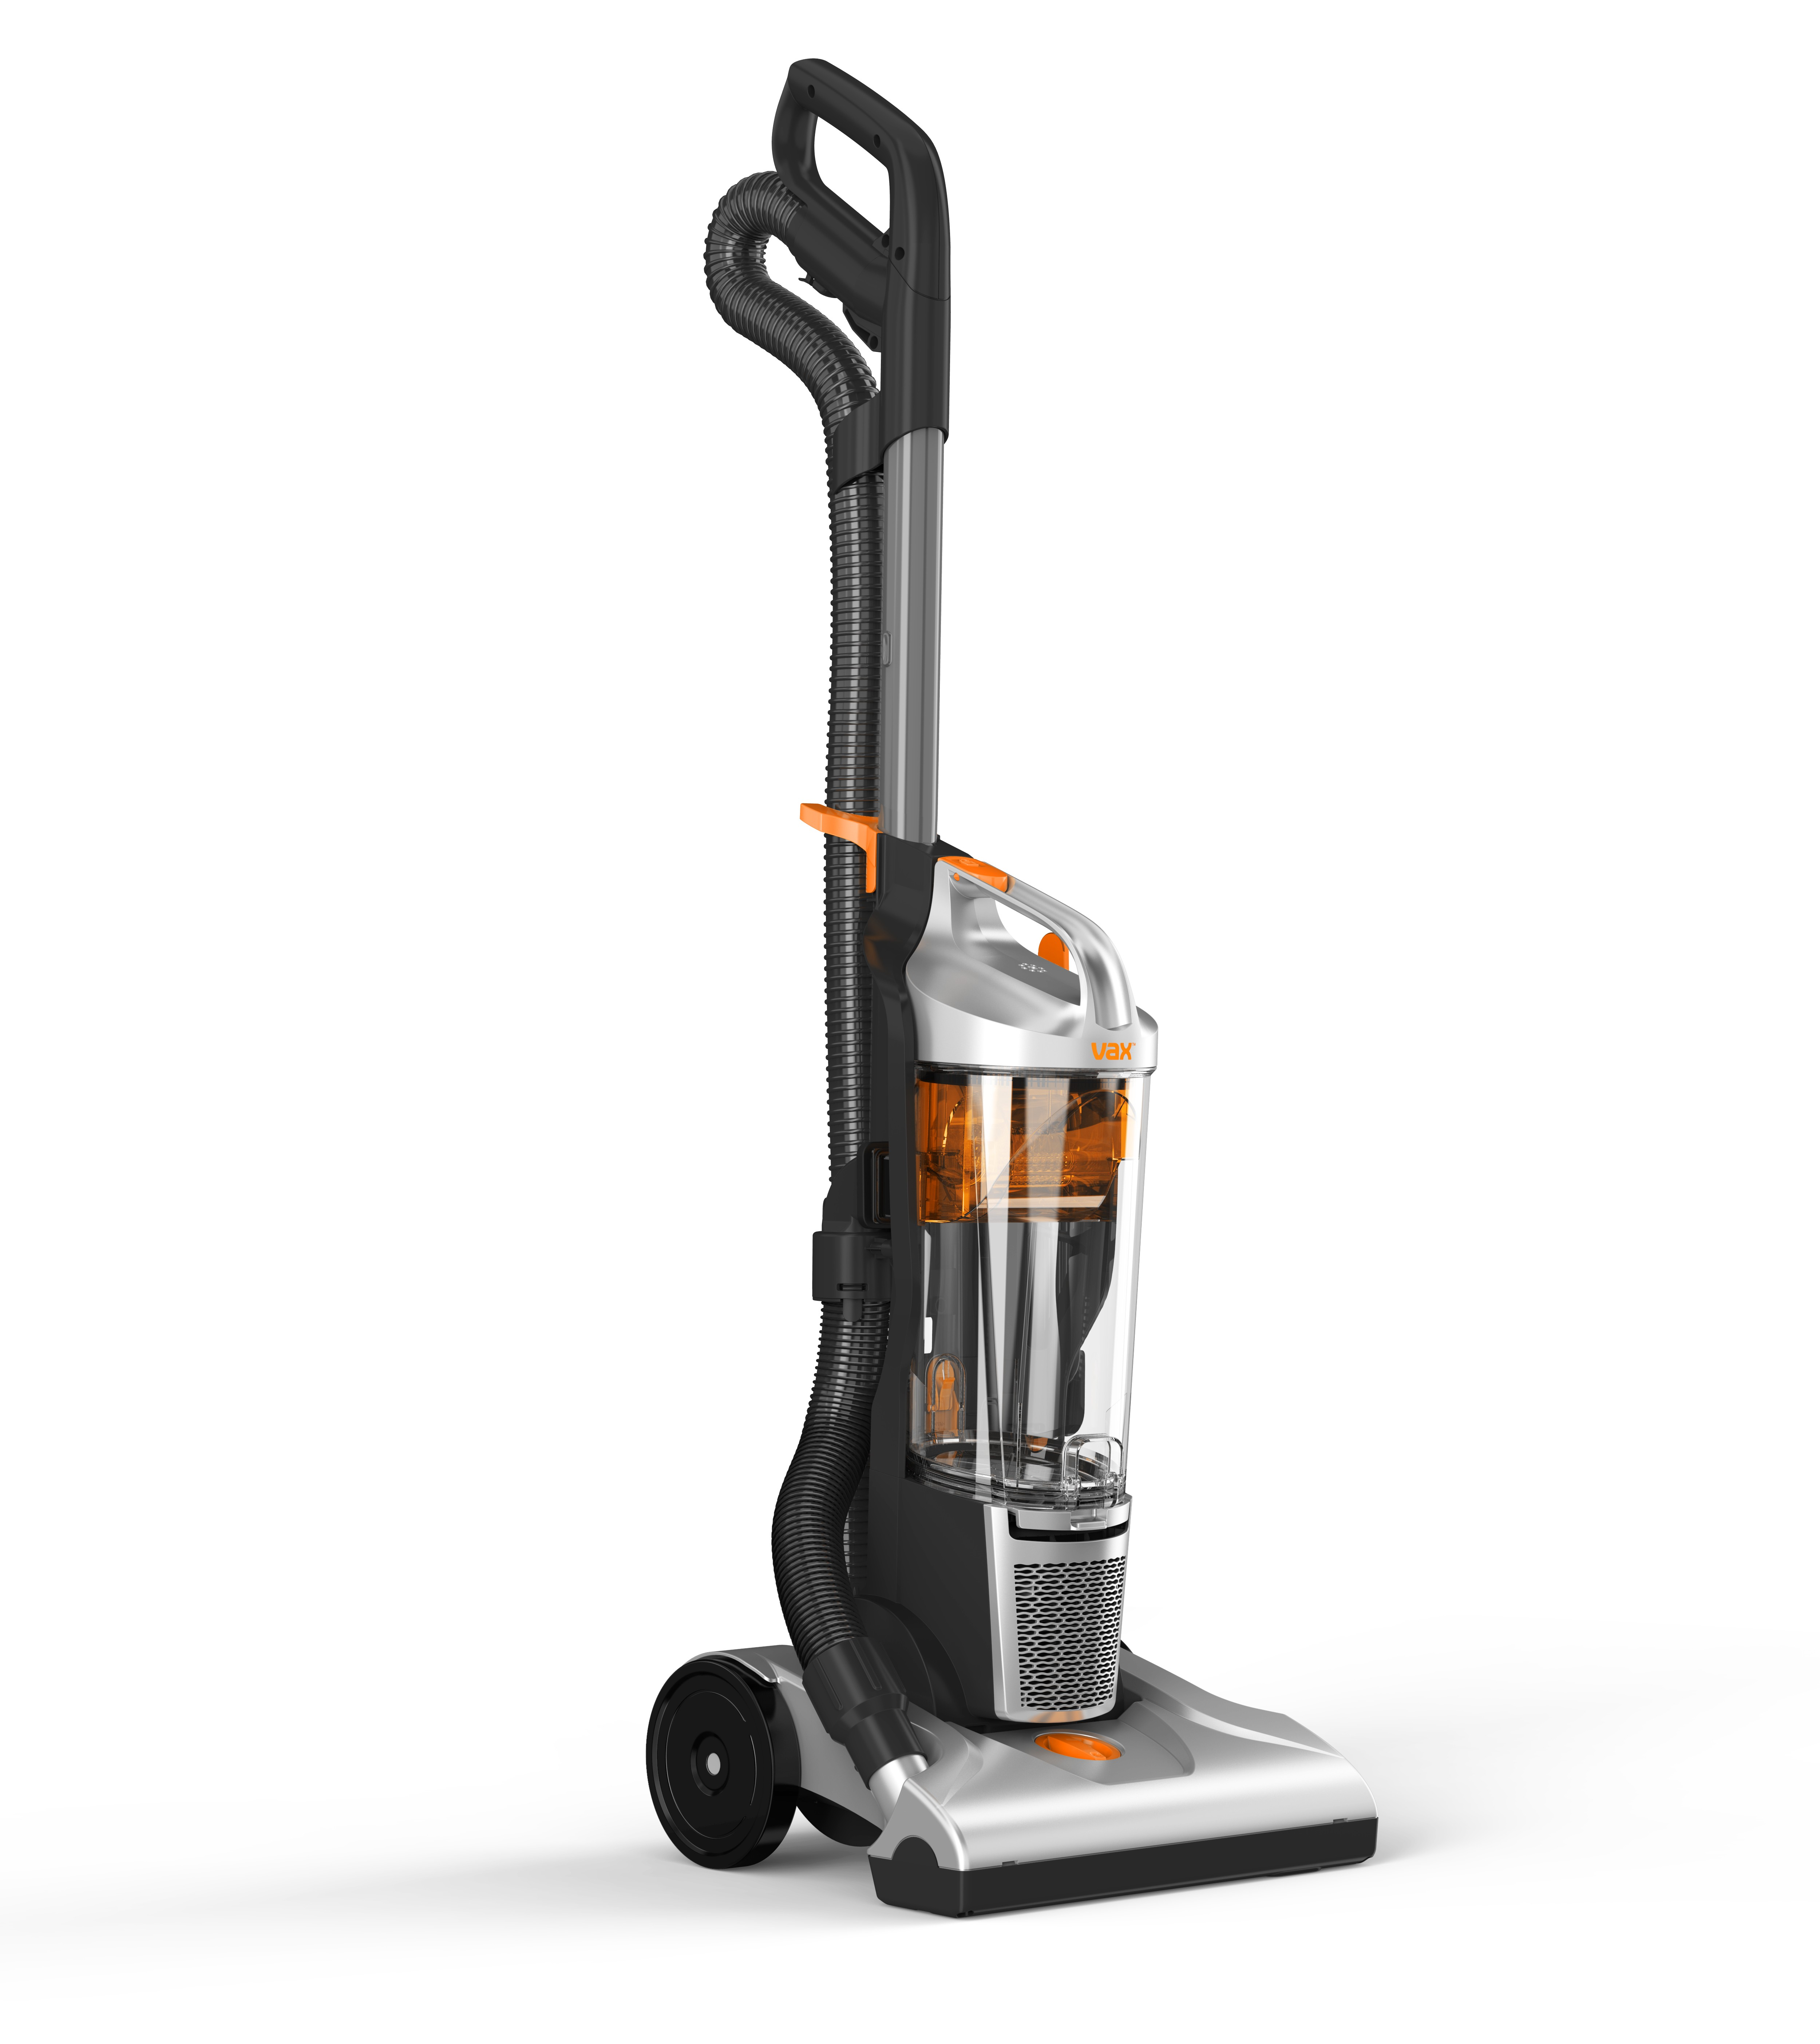 Power Vacuum Cleaner : Vax power upright vacuum cleaner u m be official